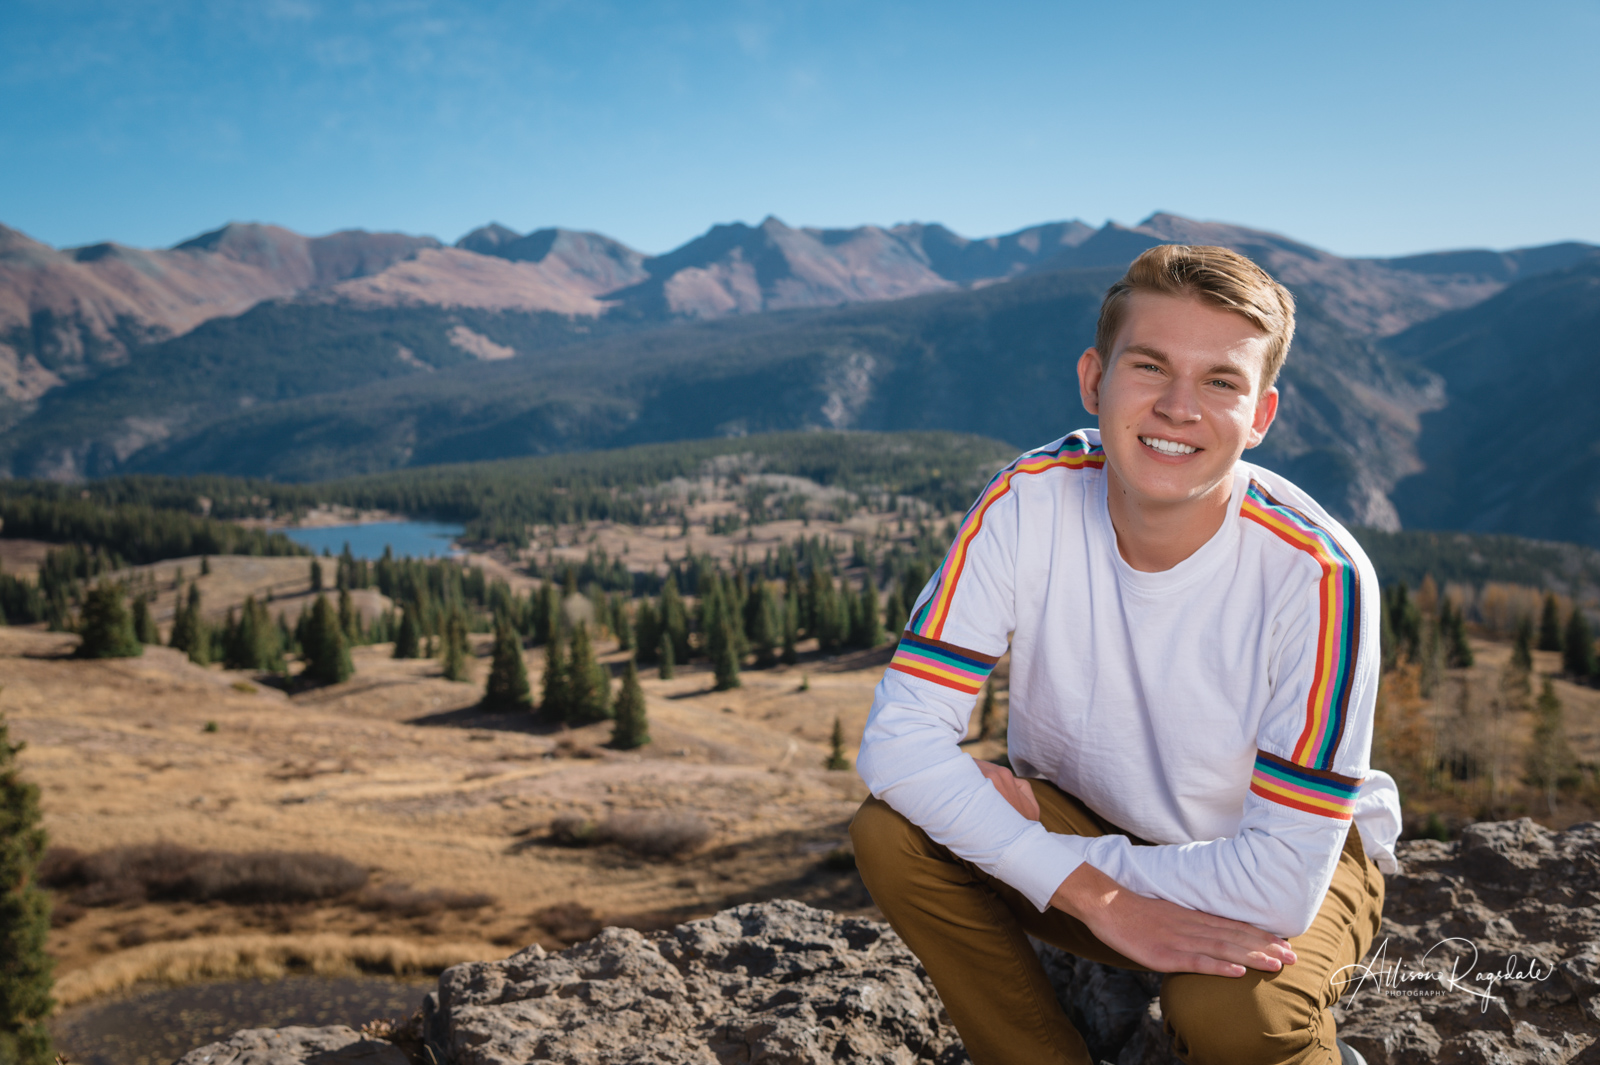 Mountain senior pictures